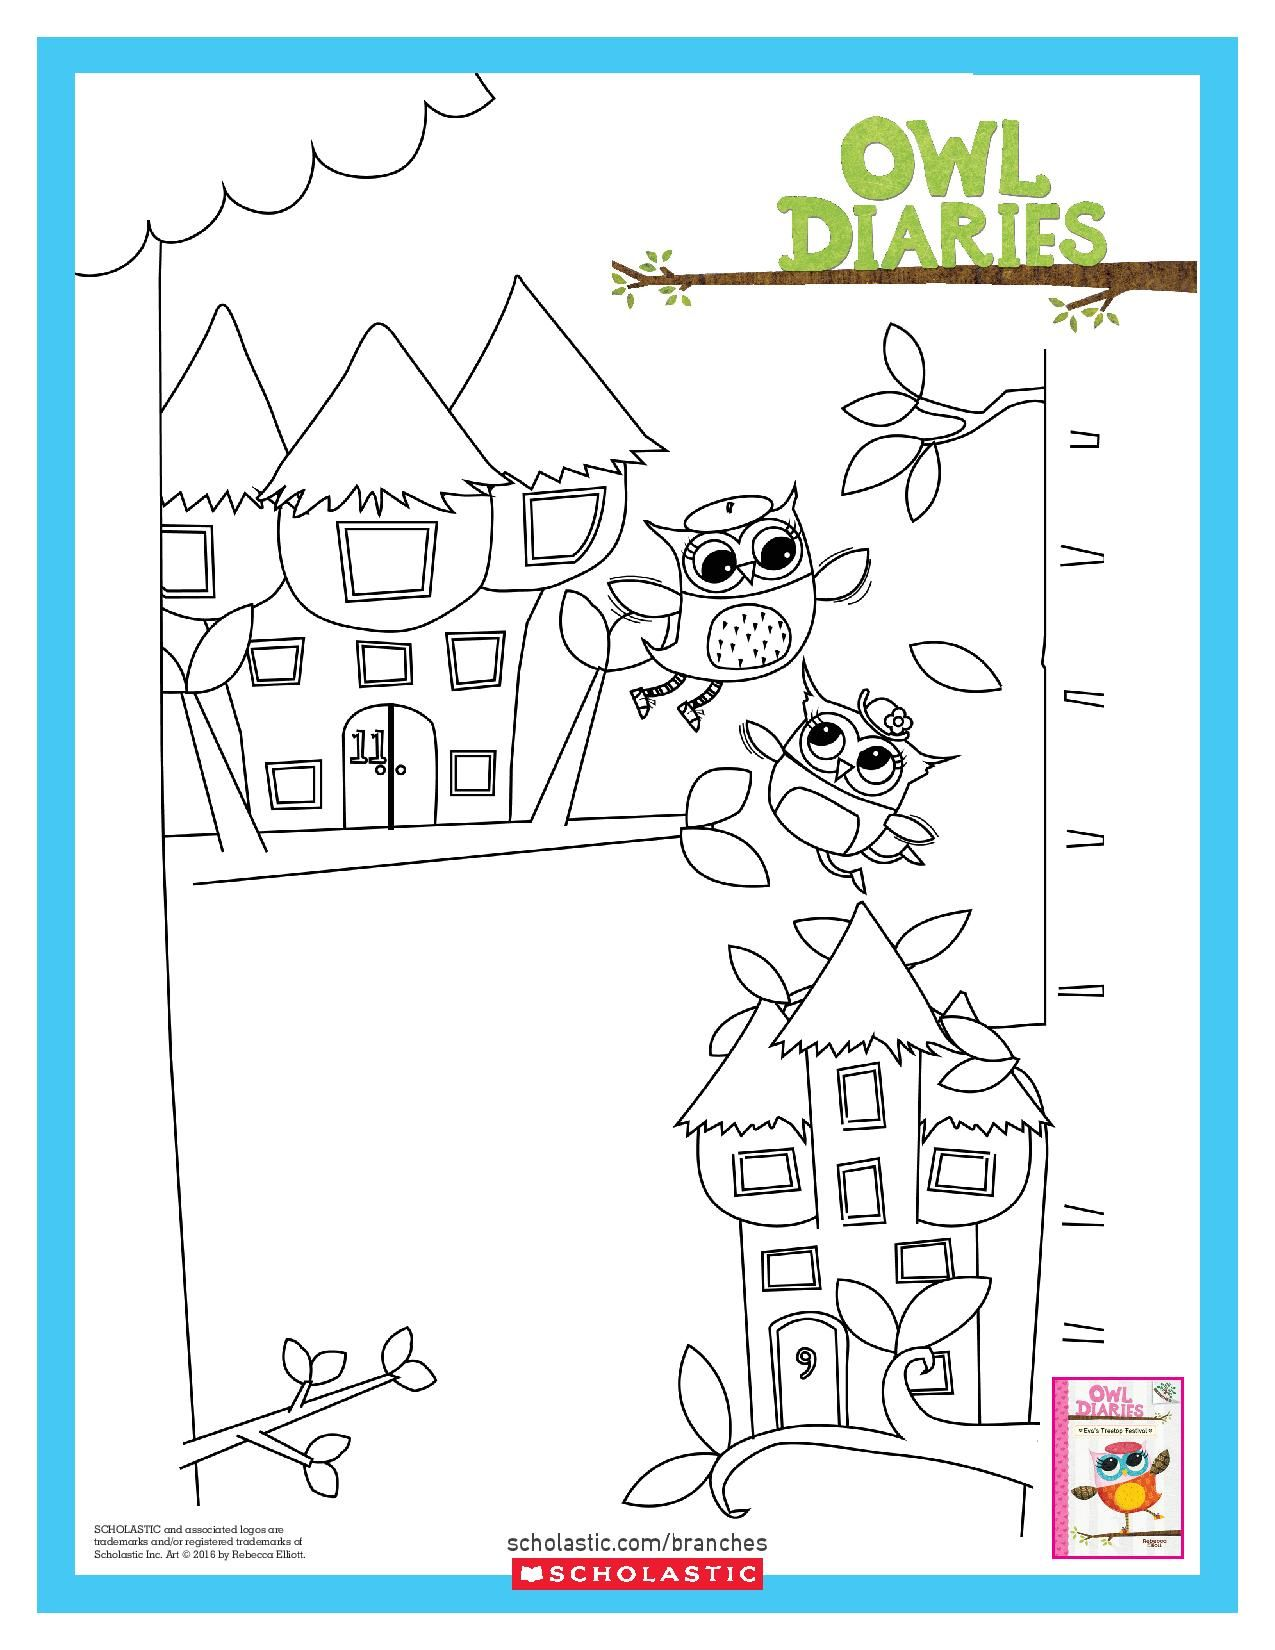 Color Eva And Her Treetop Home In This Scholasticbranches